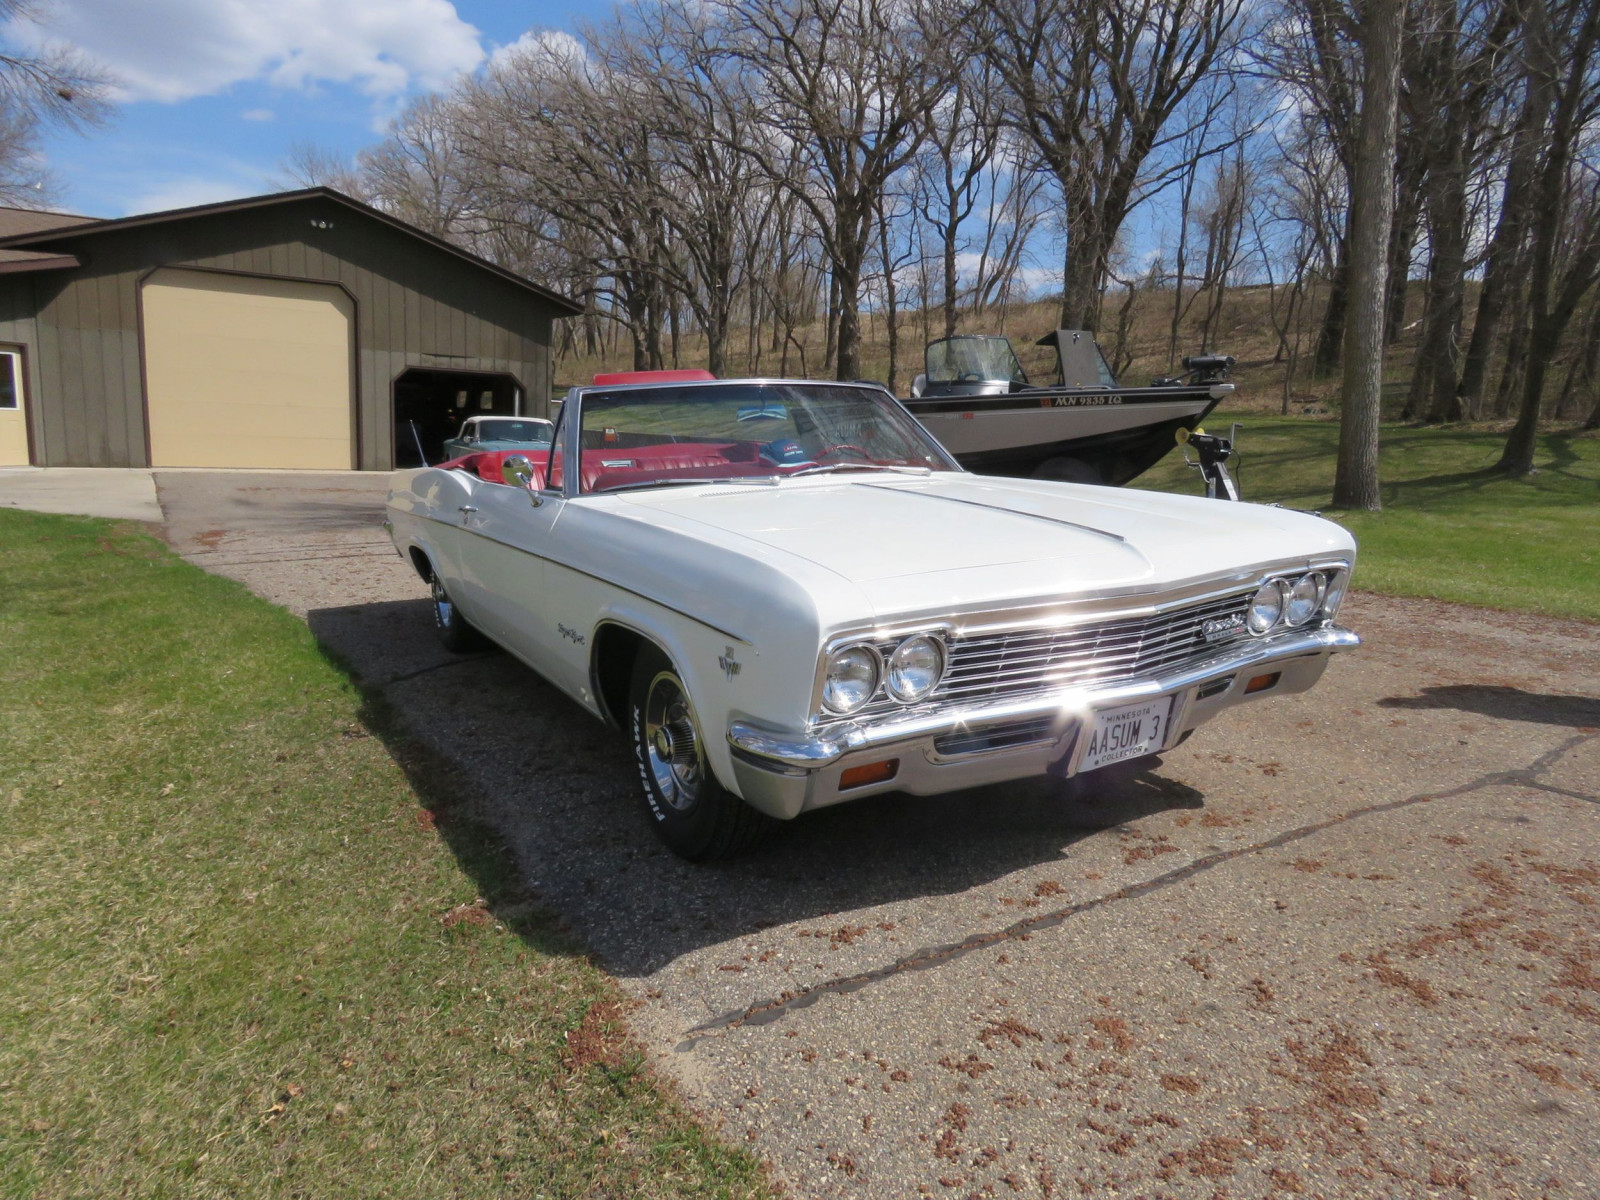 1966 Chevrolet Impala SS Convertible - Image 3